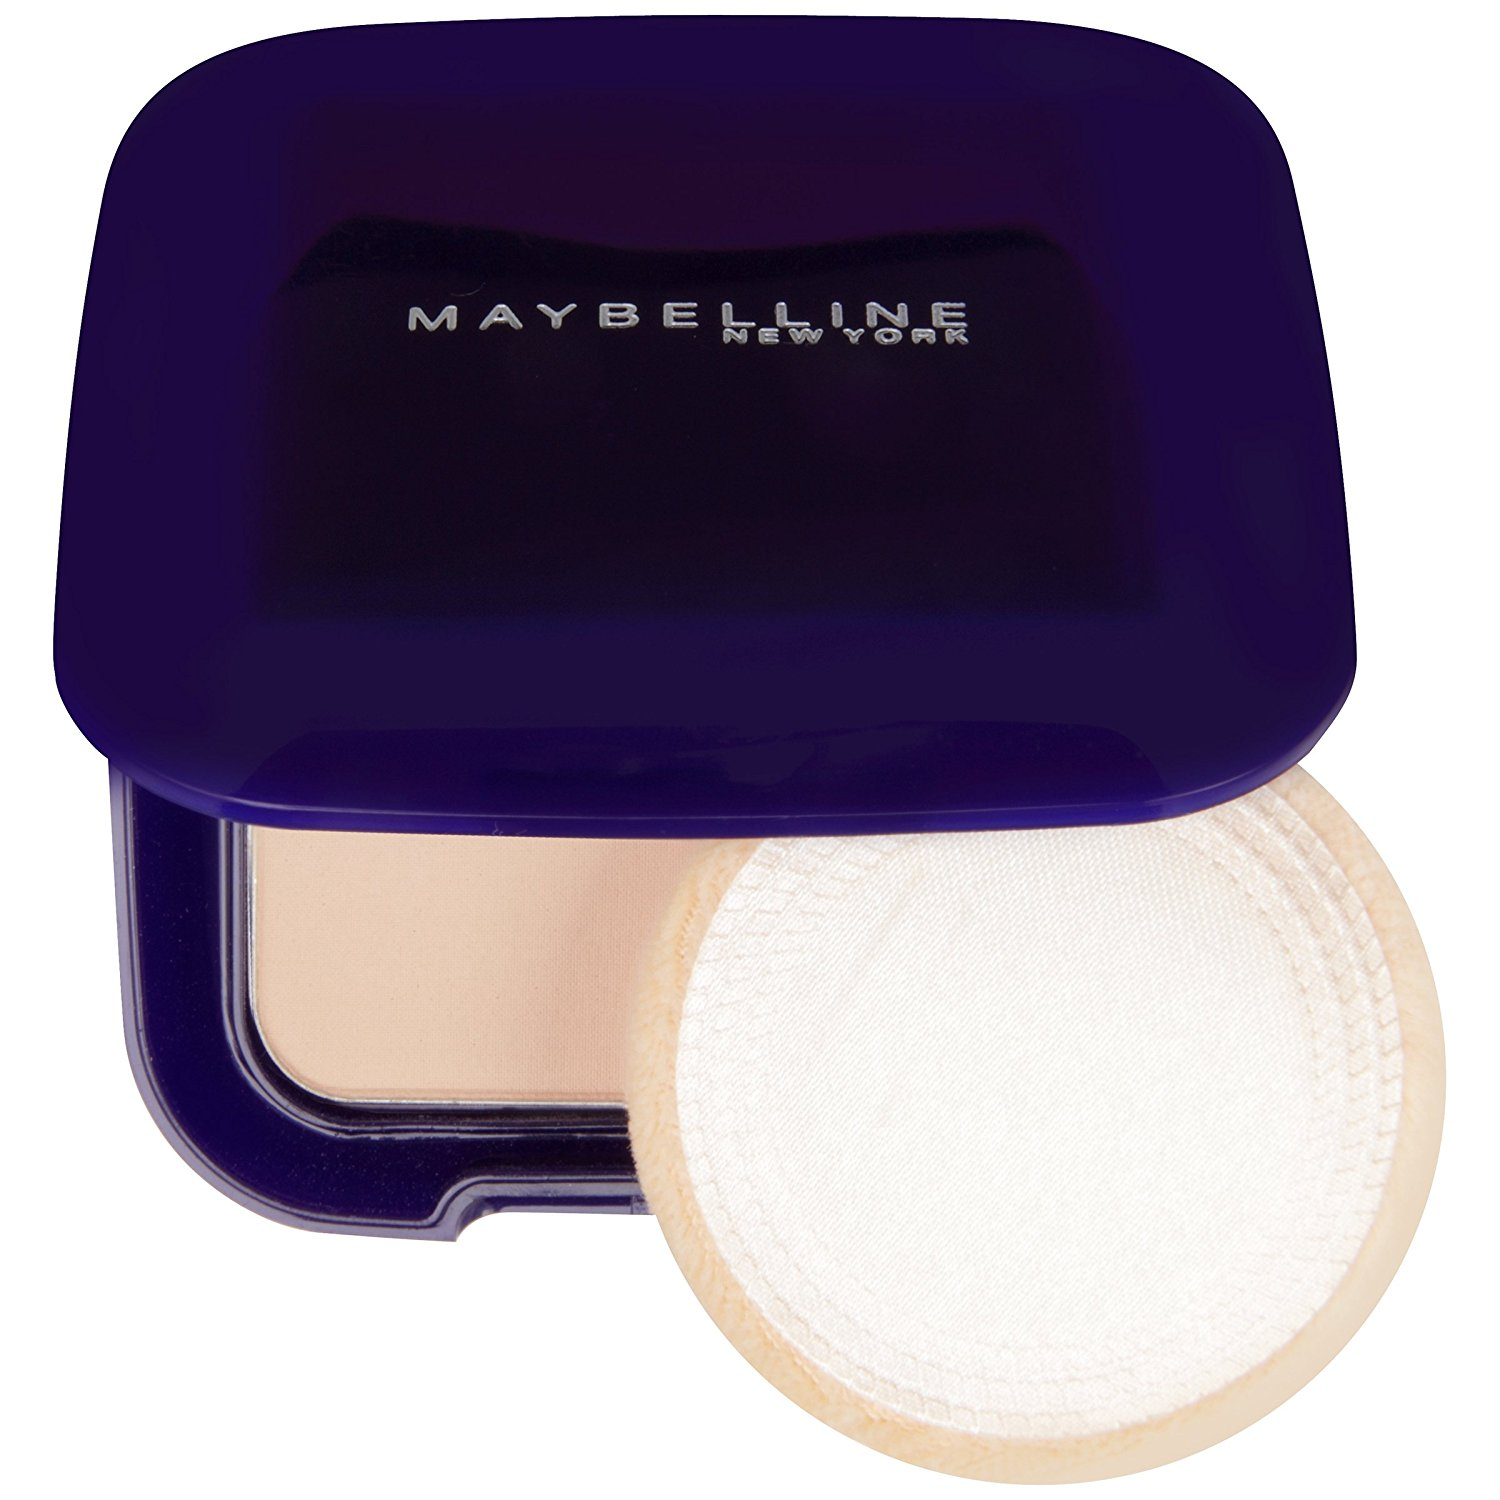 Maybelline Shine Free Oil Control Pressed Powder - Best Face Powder Reviews